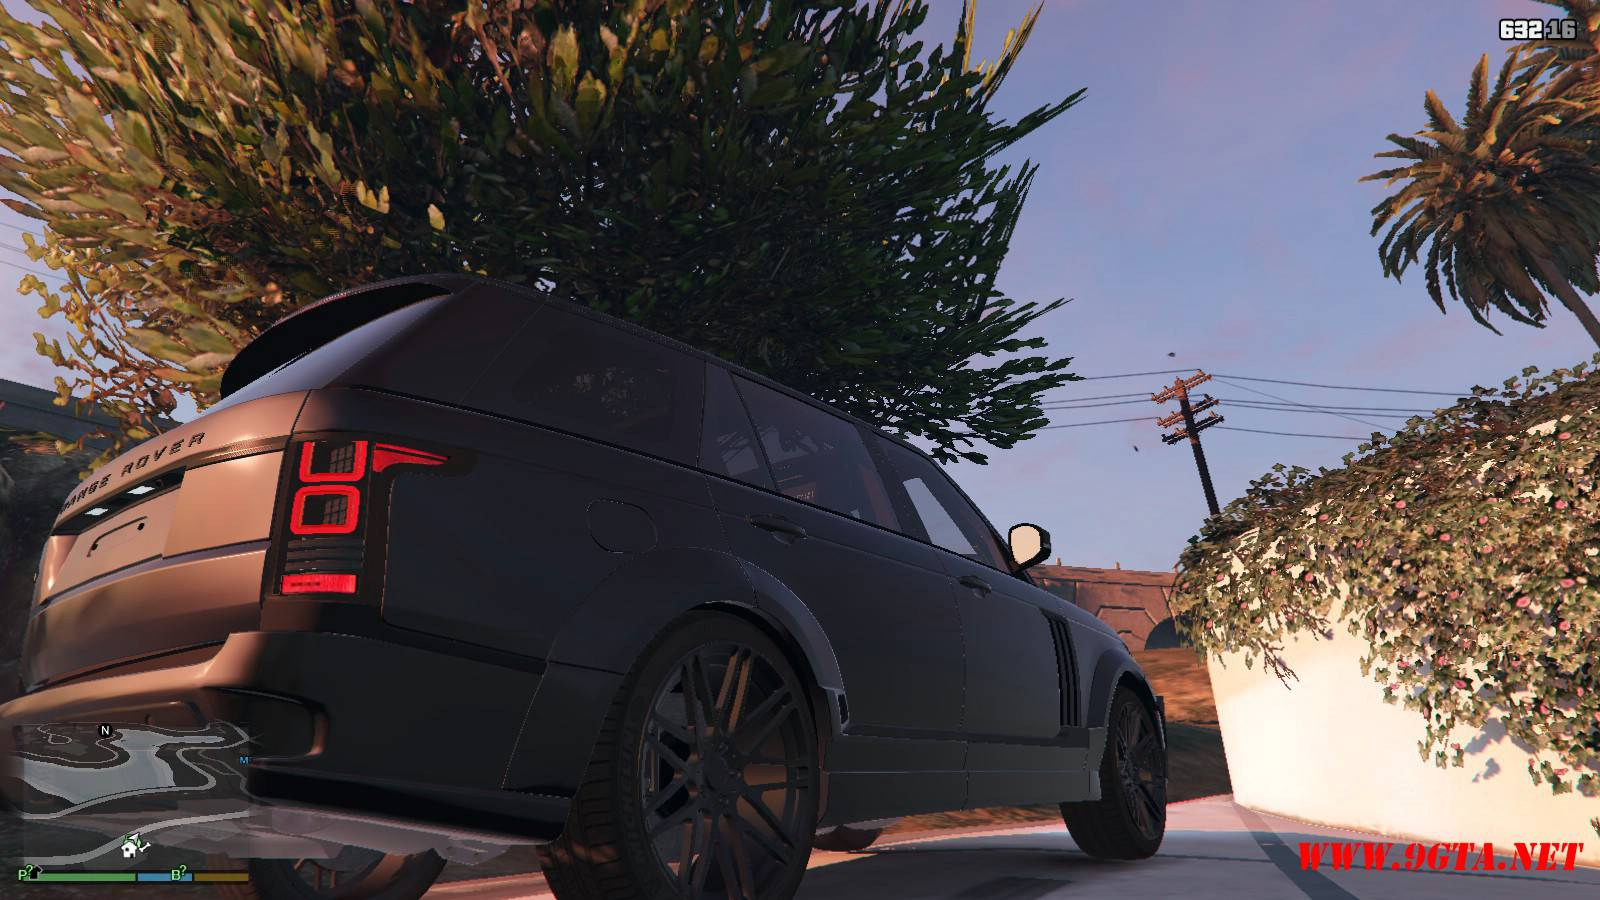 Range Rover Vogue Startech 2019 GTA5 mods (11)